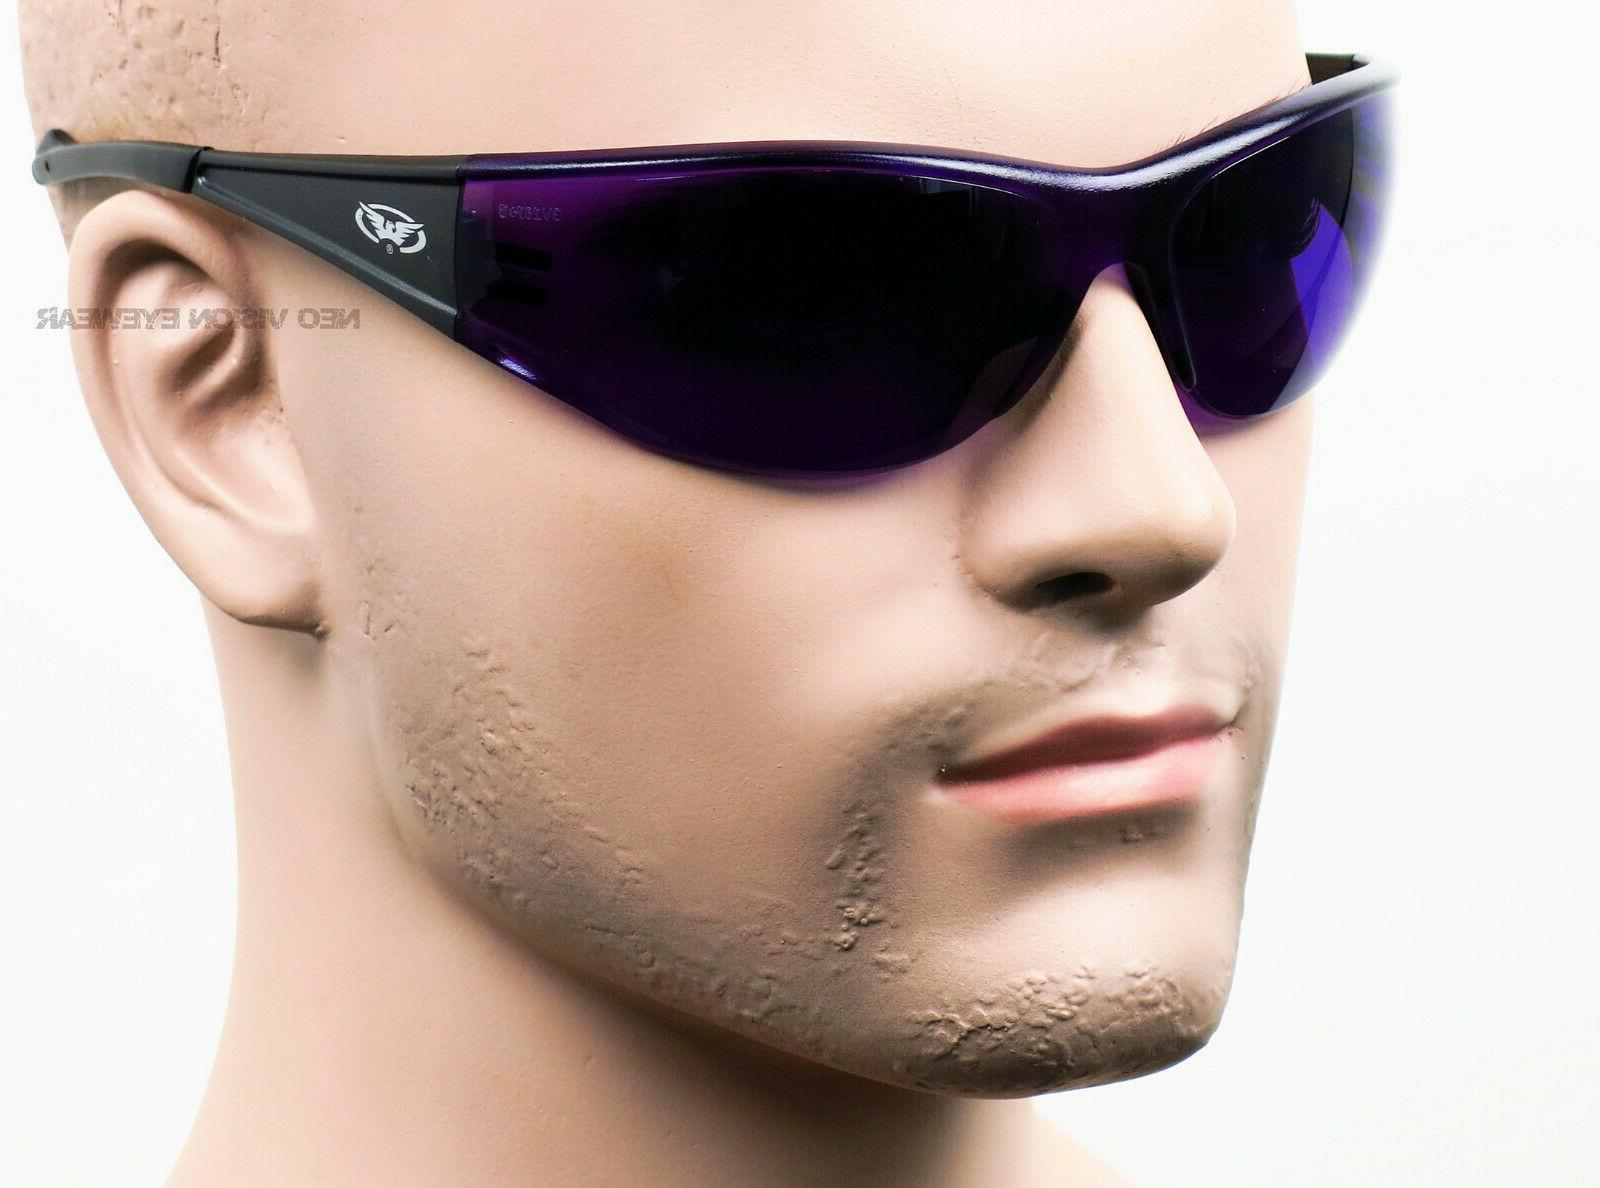 Global Vision Full Purple Lens Safety Glasses Sunglasses Z87+